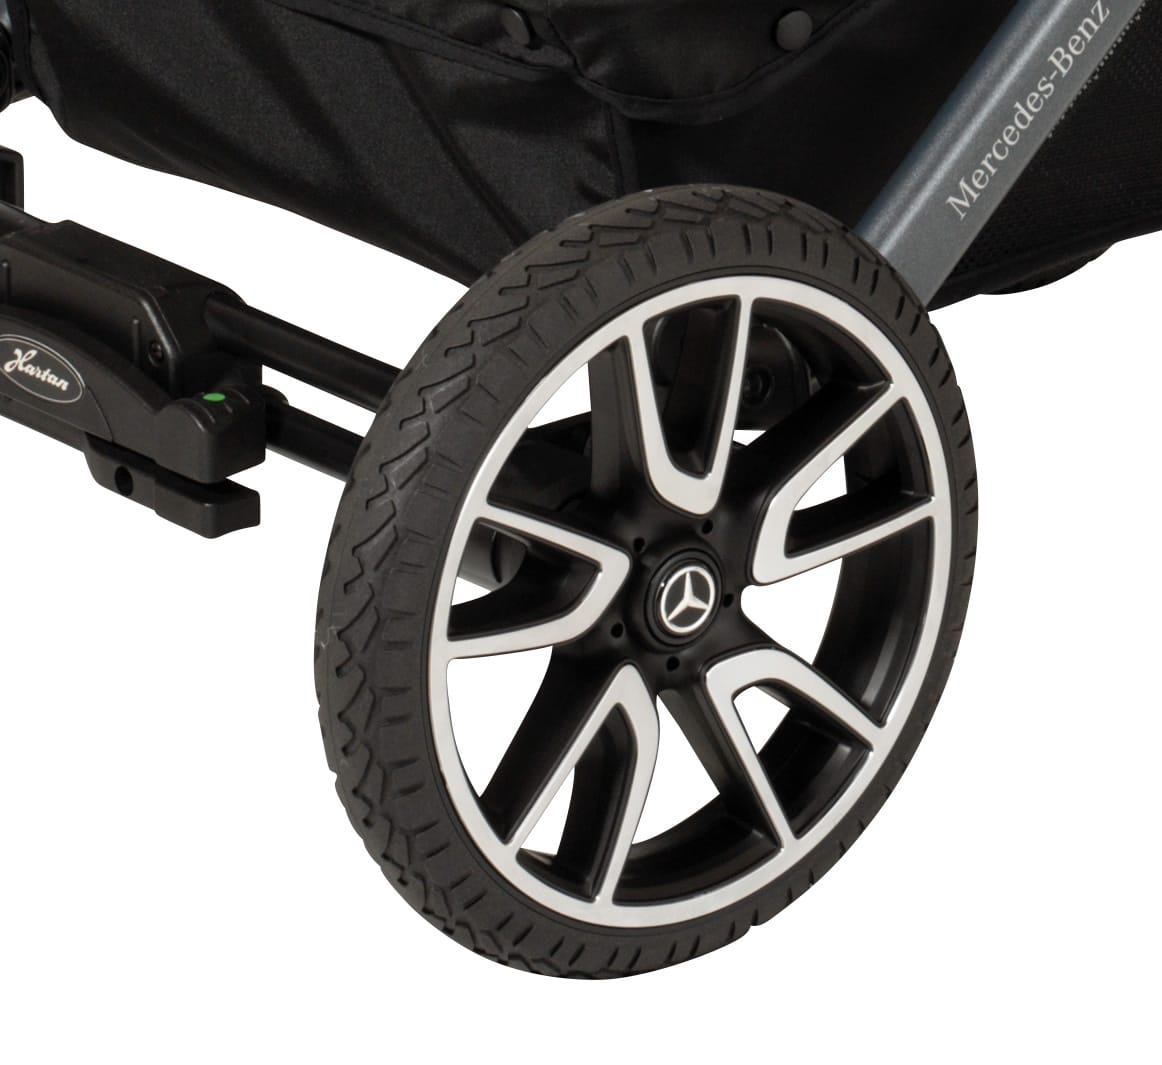 Hartan Mercedes-Benz stroller wheel detail